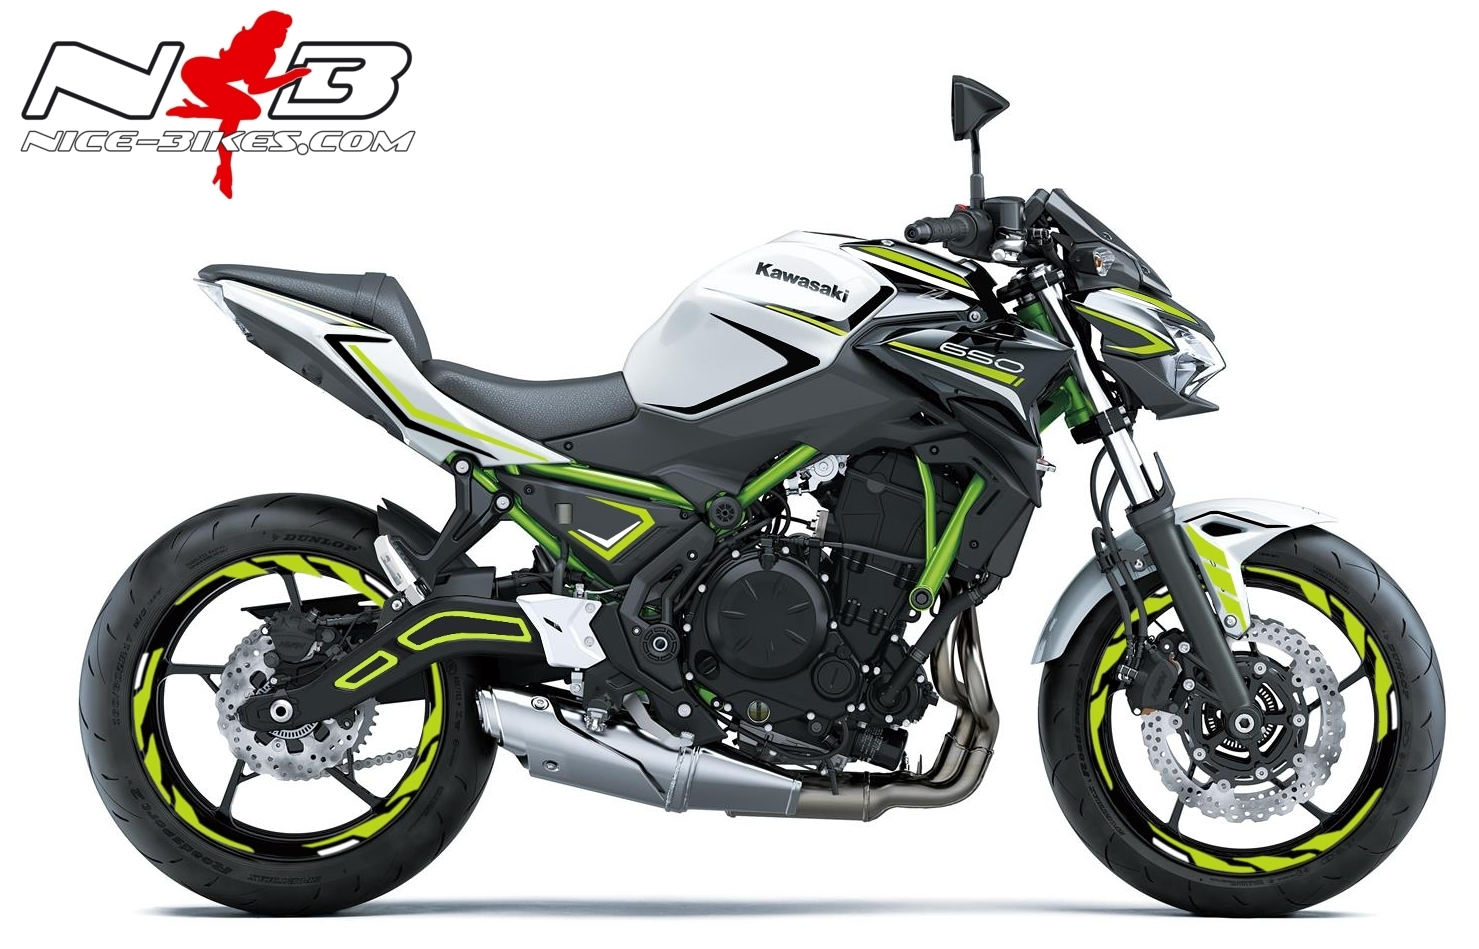 Foliendesign Kawasaki Z650 Bj. 2020 Lime Green